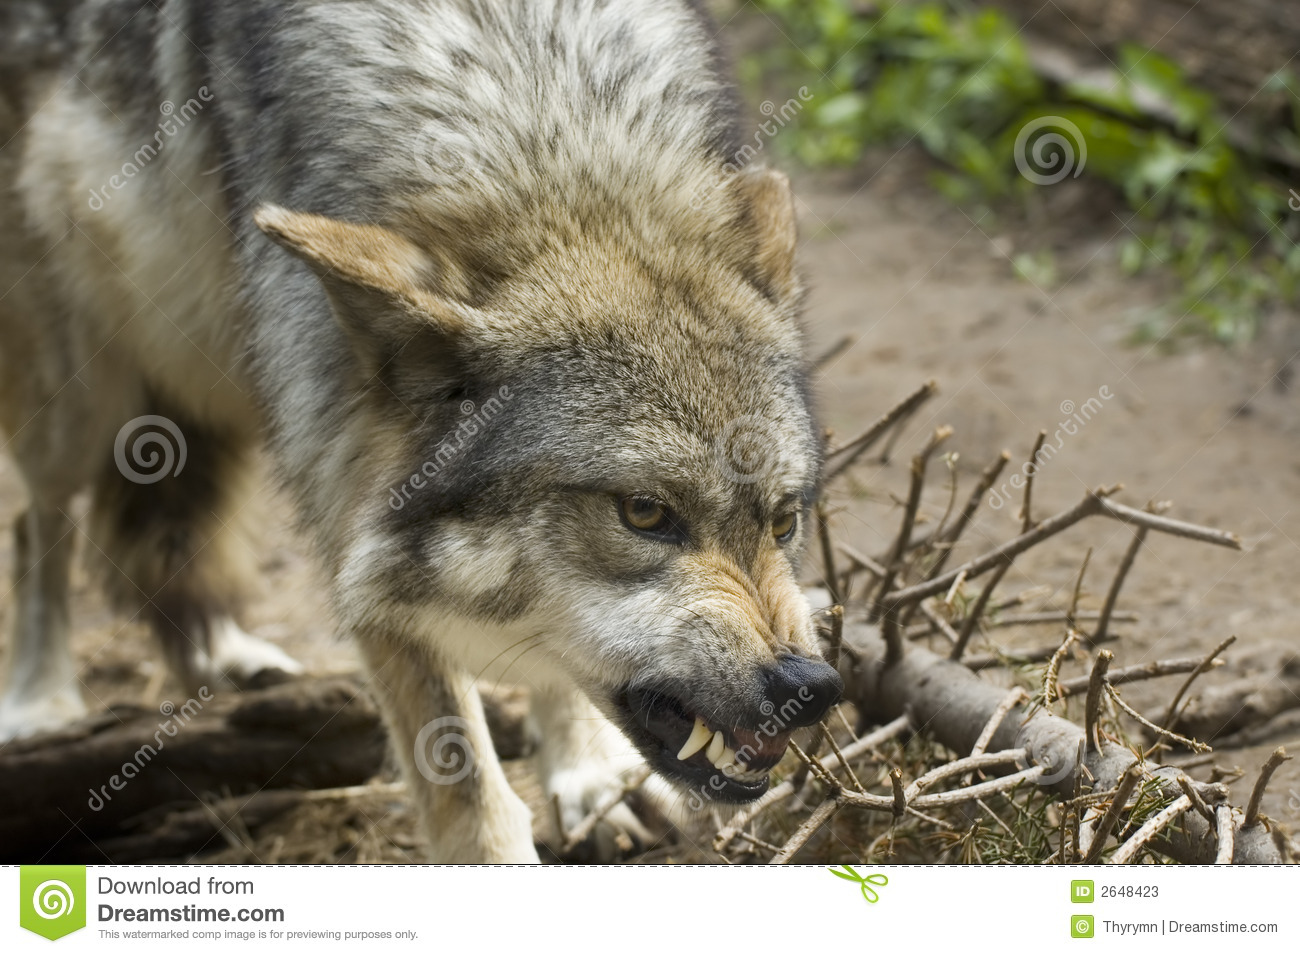 Growling Wolf Stock Image. Image Of Snarl, Teeth, Rabid